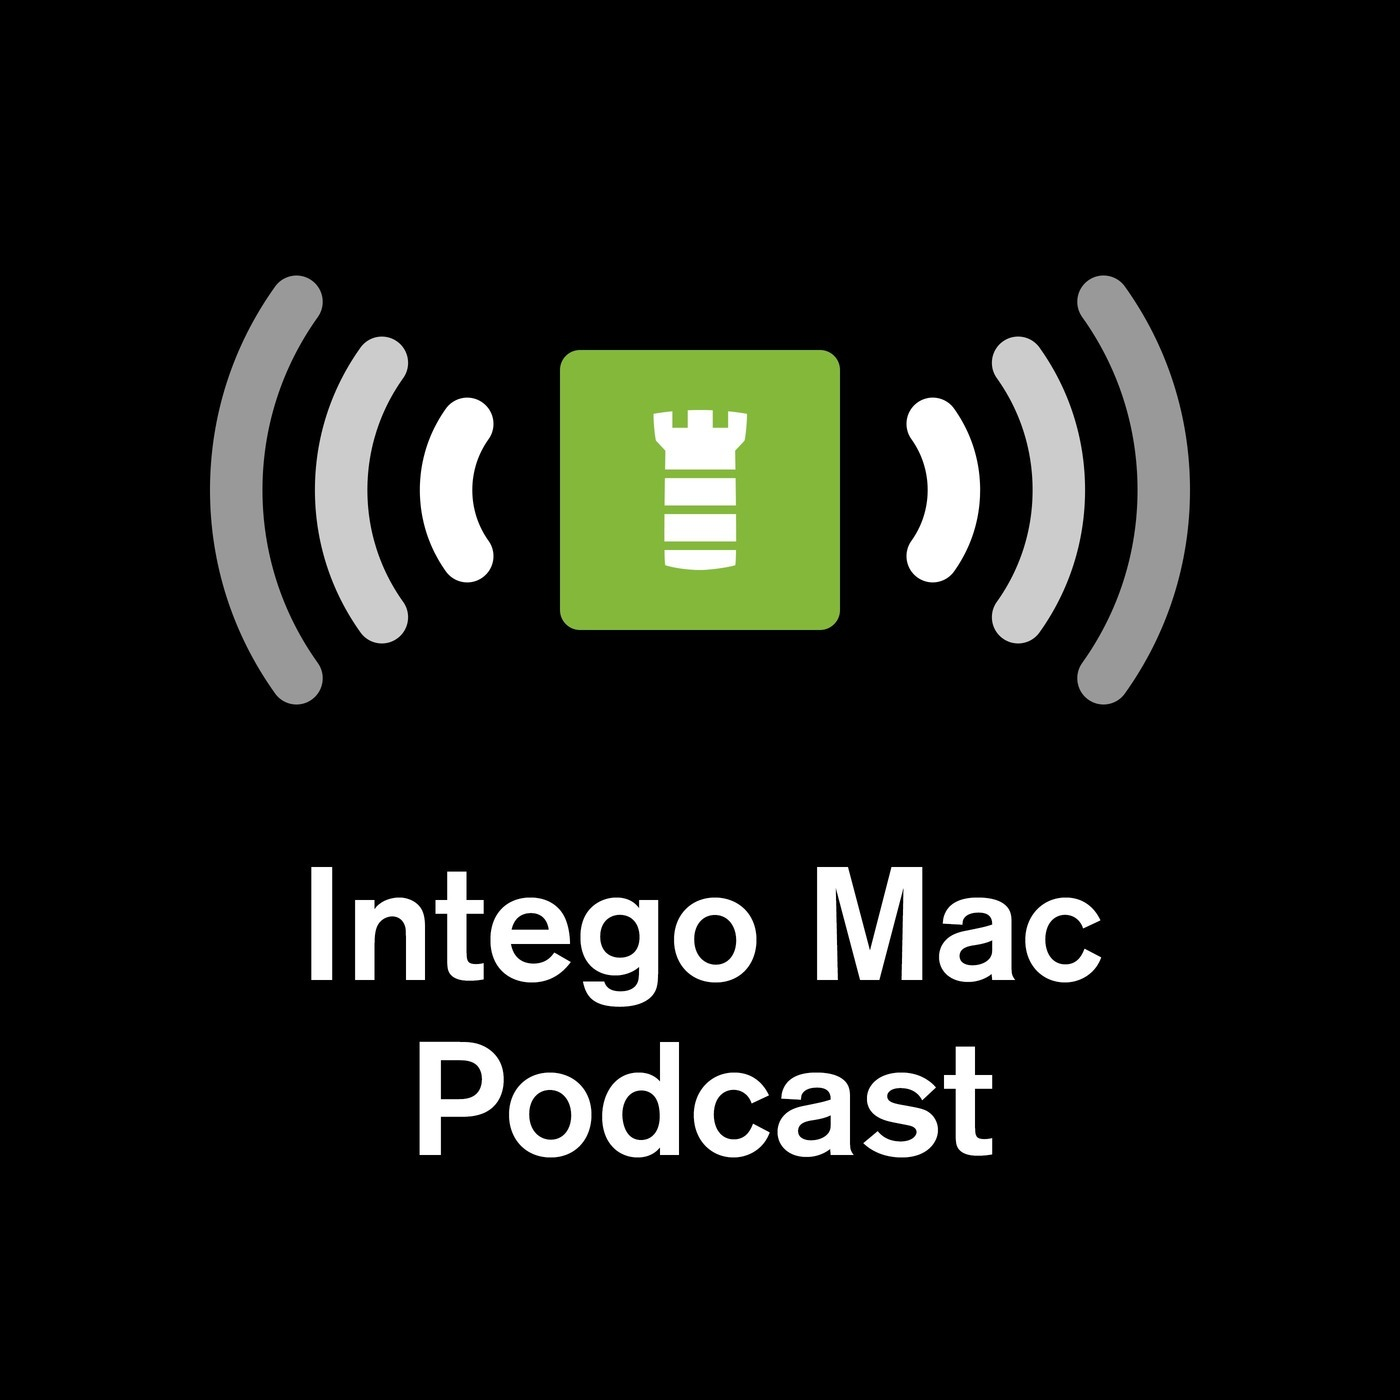 Intego Mac Podcast: Browser Cookies & Private Browsing